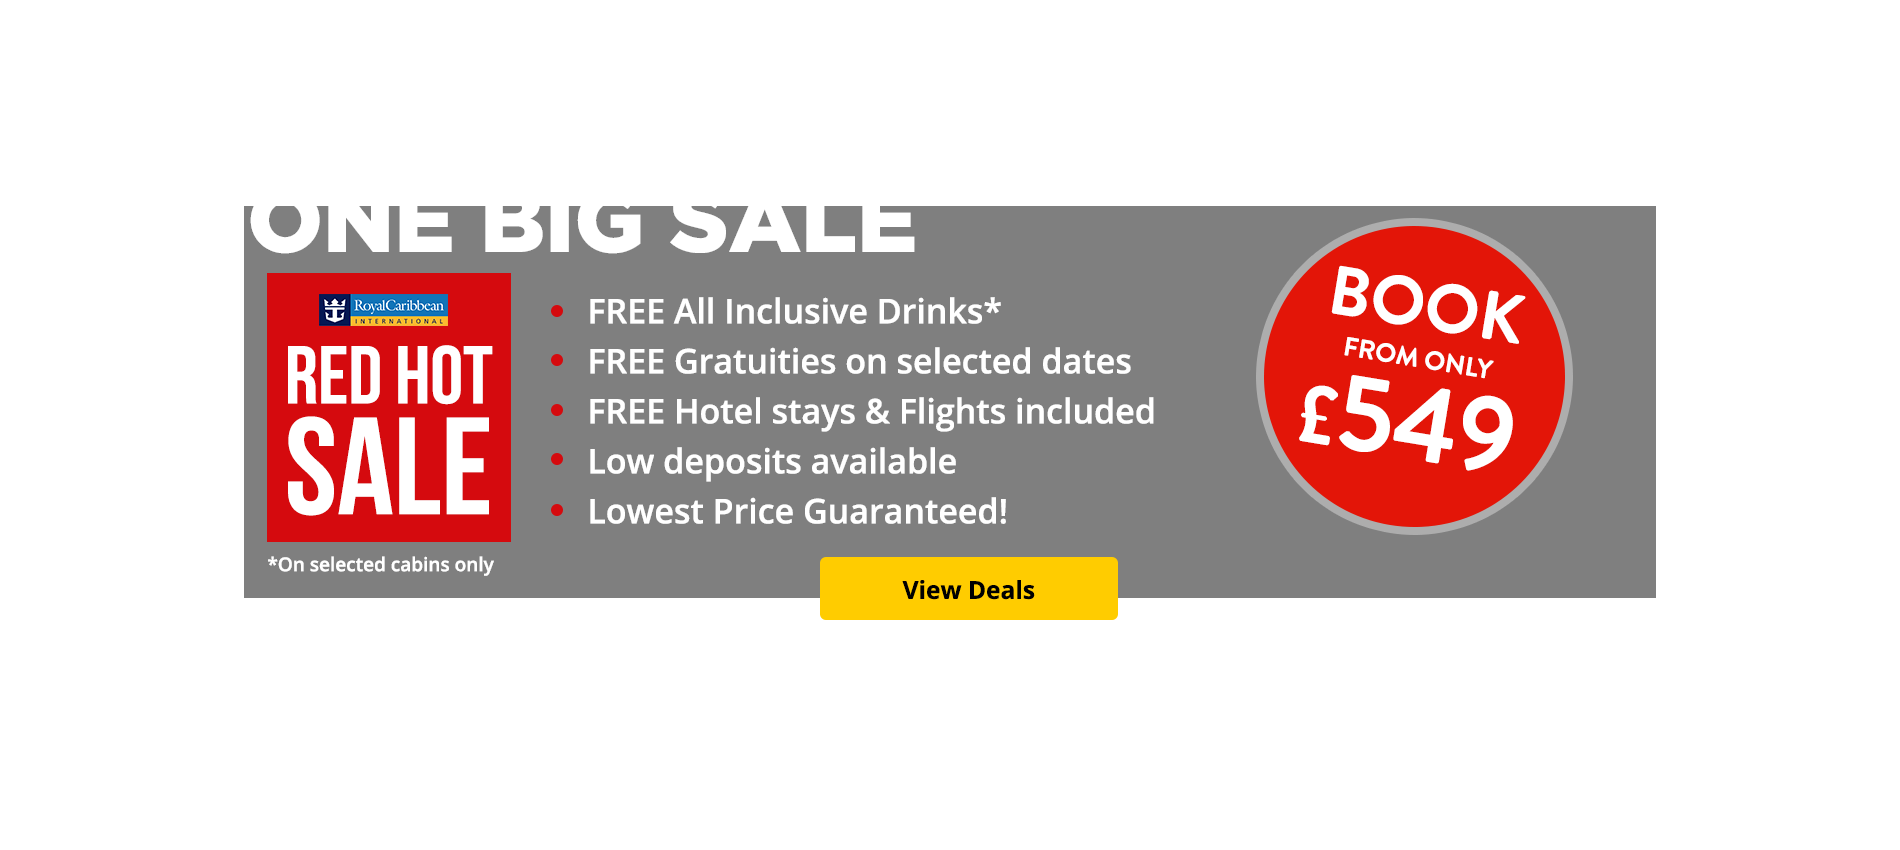 Royal Caribbean; One Big Wow! Free all-inclusive drinks and up to $300 to spend on board during our Red Hot Sale! Your hotel stay and flights are included, so why not book now from just £9 per person?